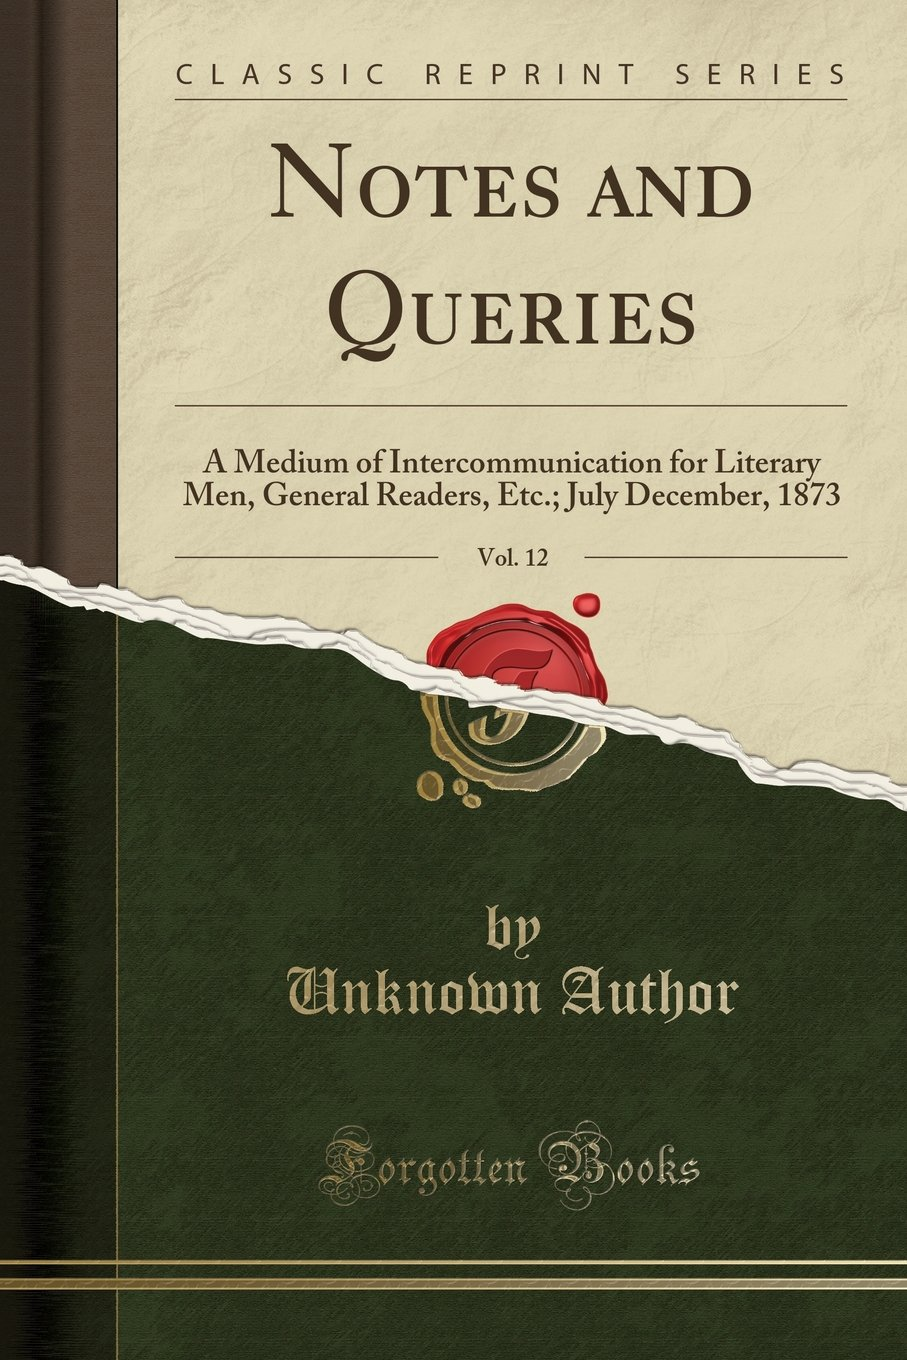 Download Notes and Queries, Vol. 12: A Medium of Intercommunication for Literary Men, General Readers, Etc.; July December, 1873 (Classic Reprint) ebook